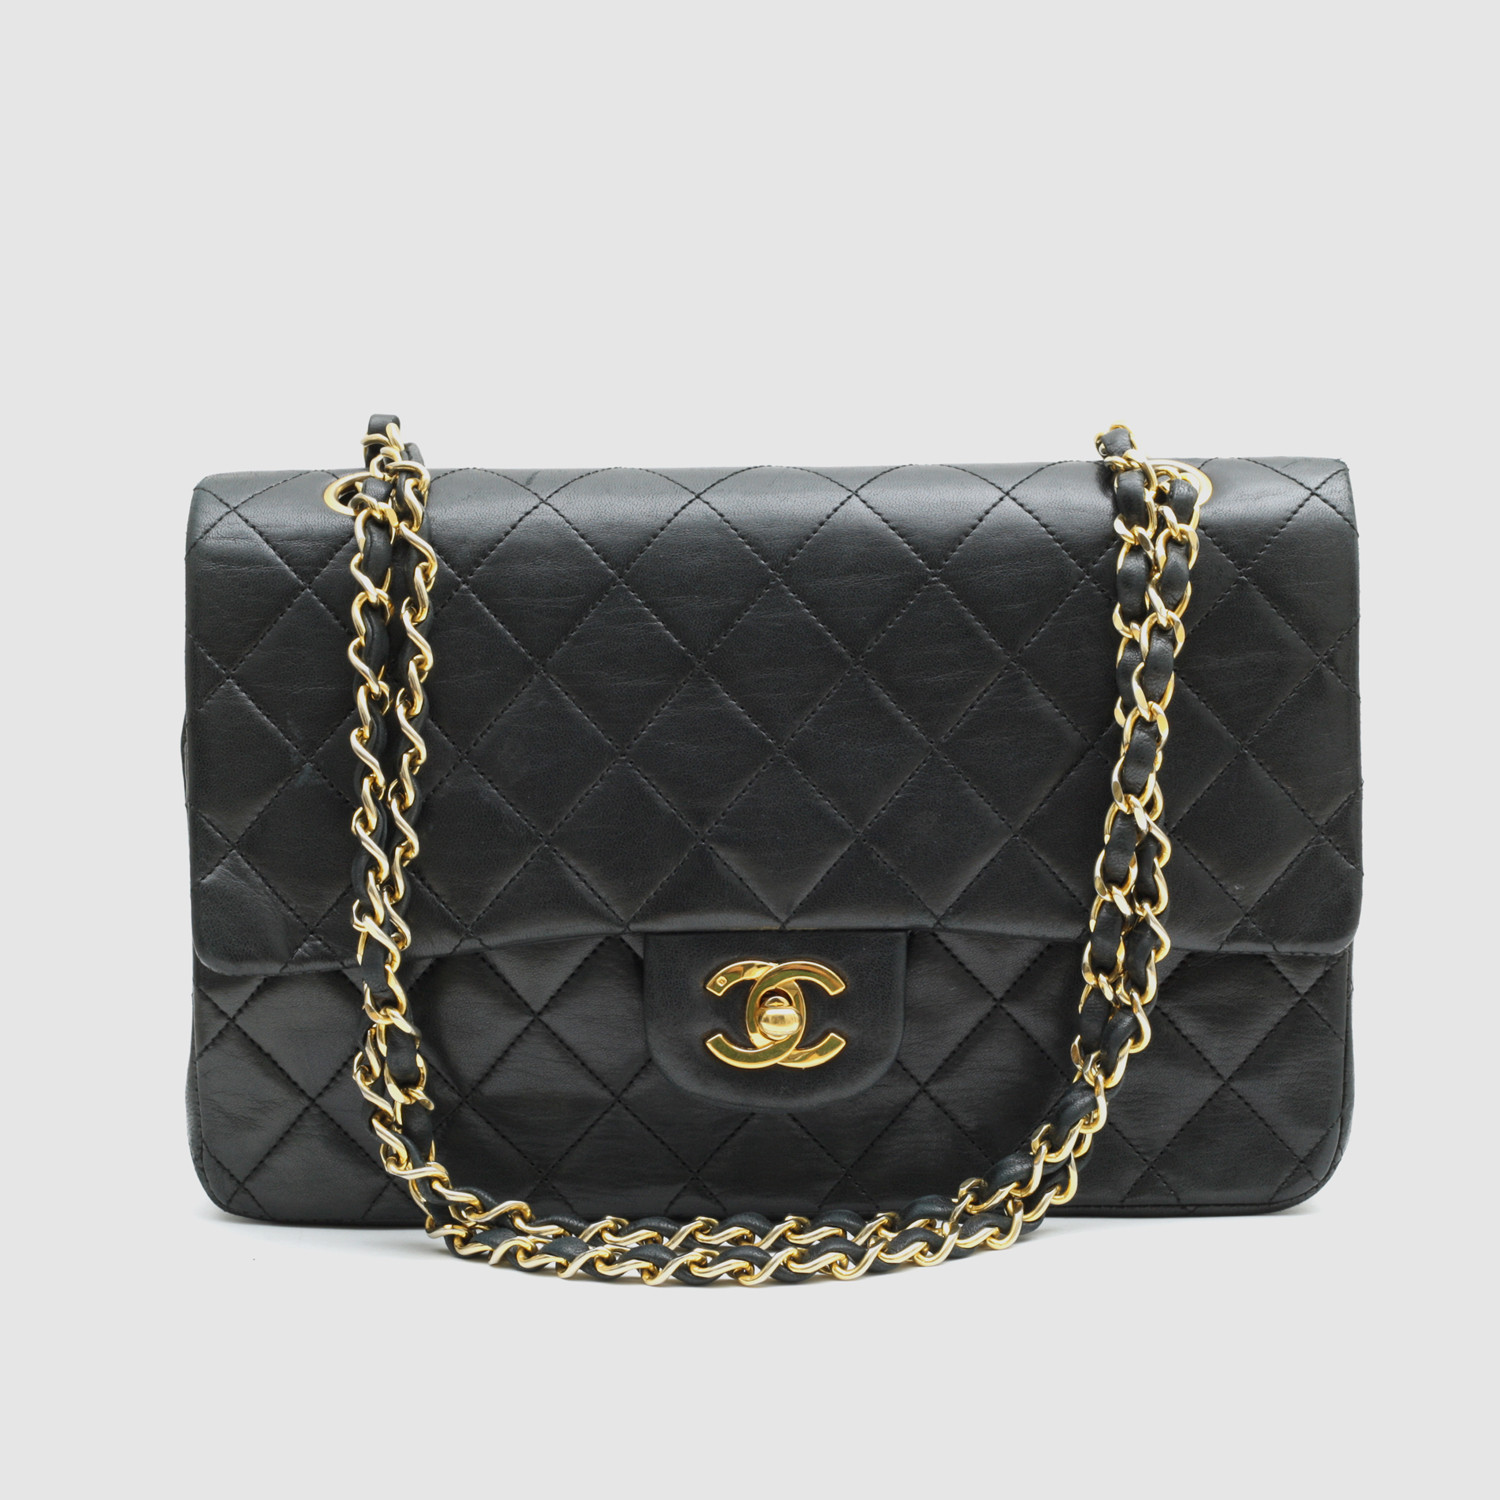 ab5b5a410ab5 Vintage Chanel Classic Flap Bag    Black Quilted Lambskin    CHAN14 ...